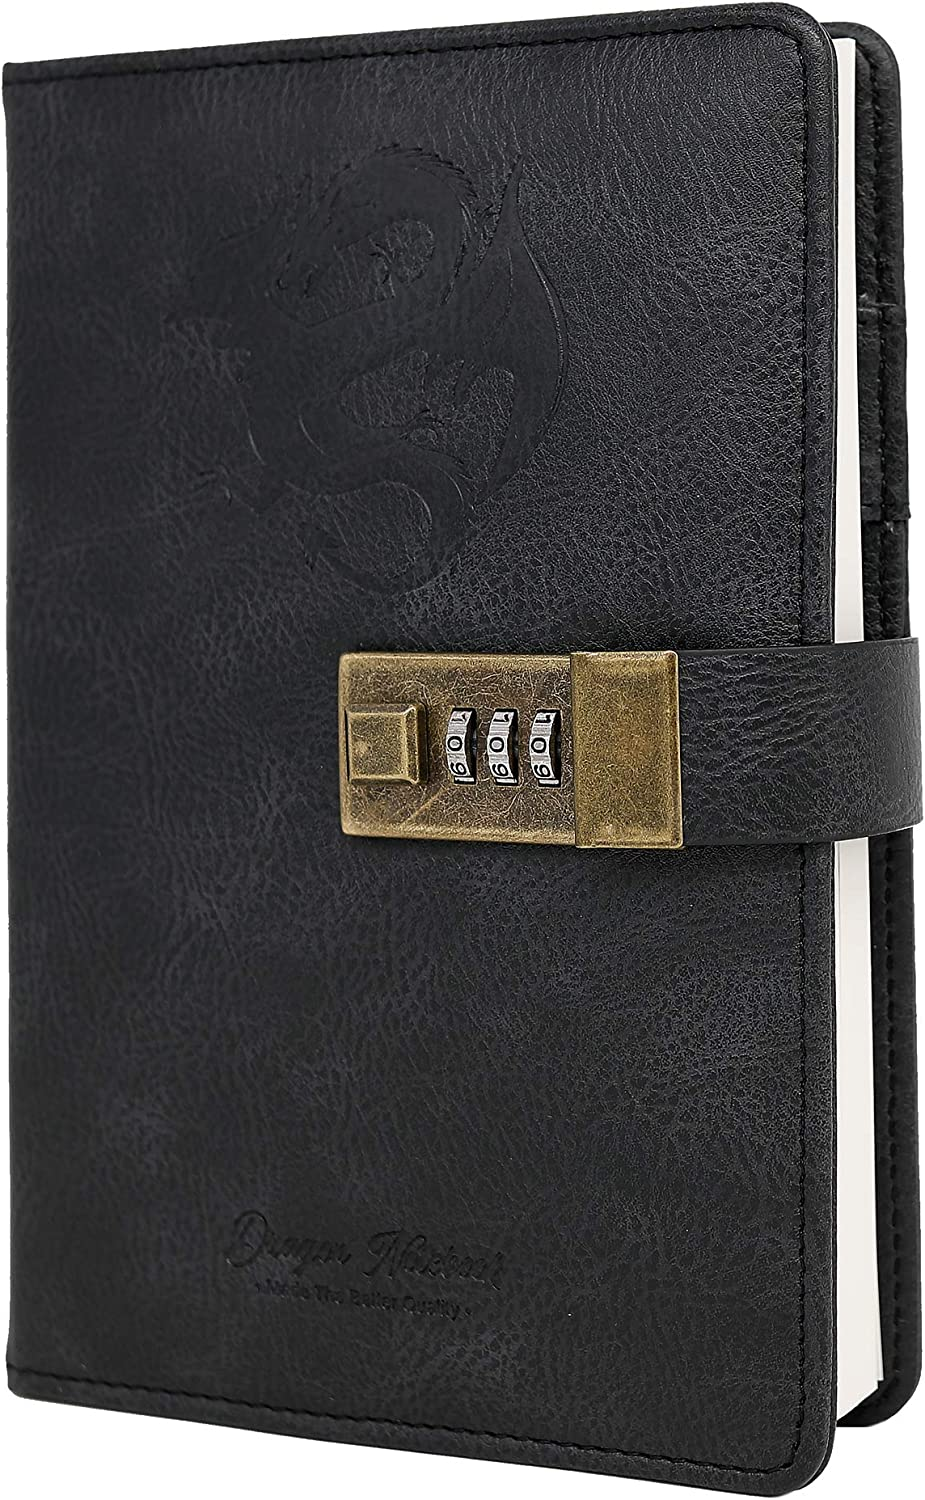 Special price for a limited time Dragon Leather Journal Hardcover Di Notebook Chicago Mall Locked Refillable